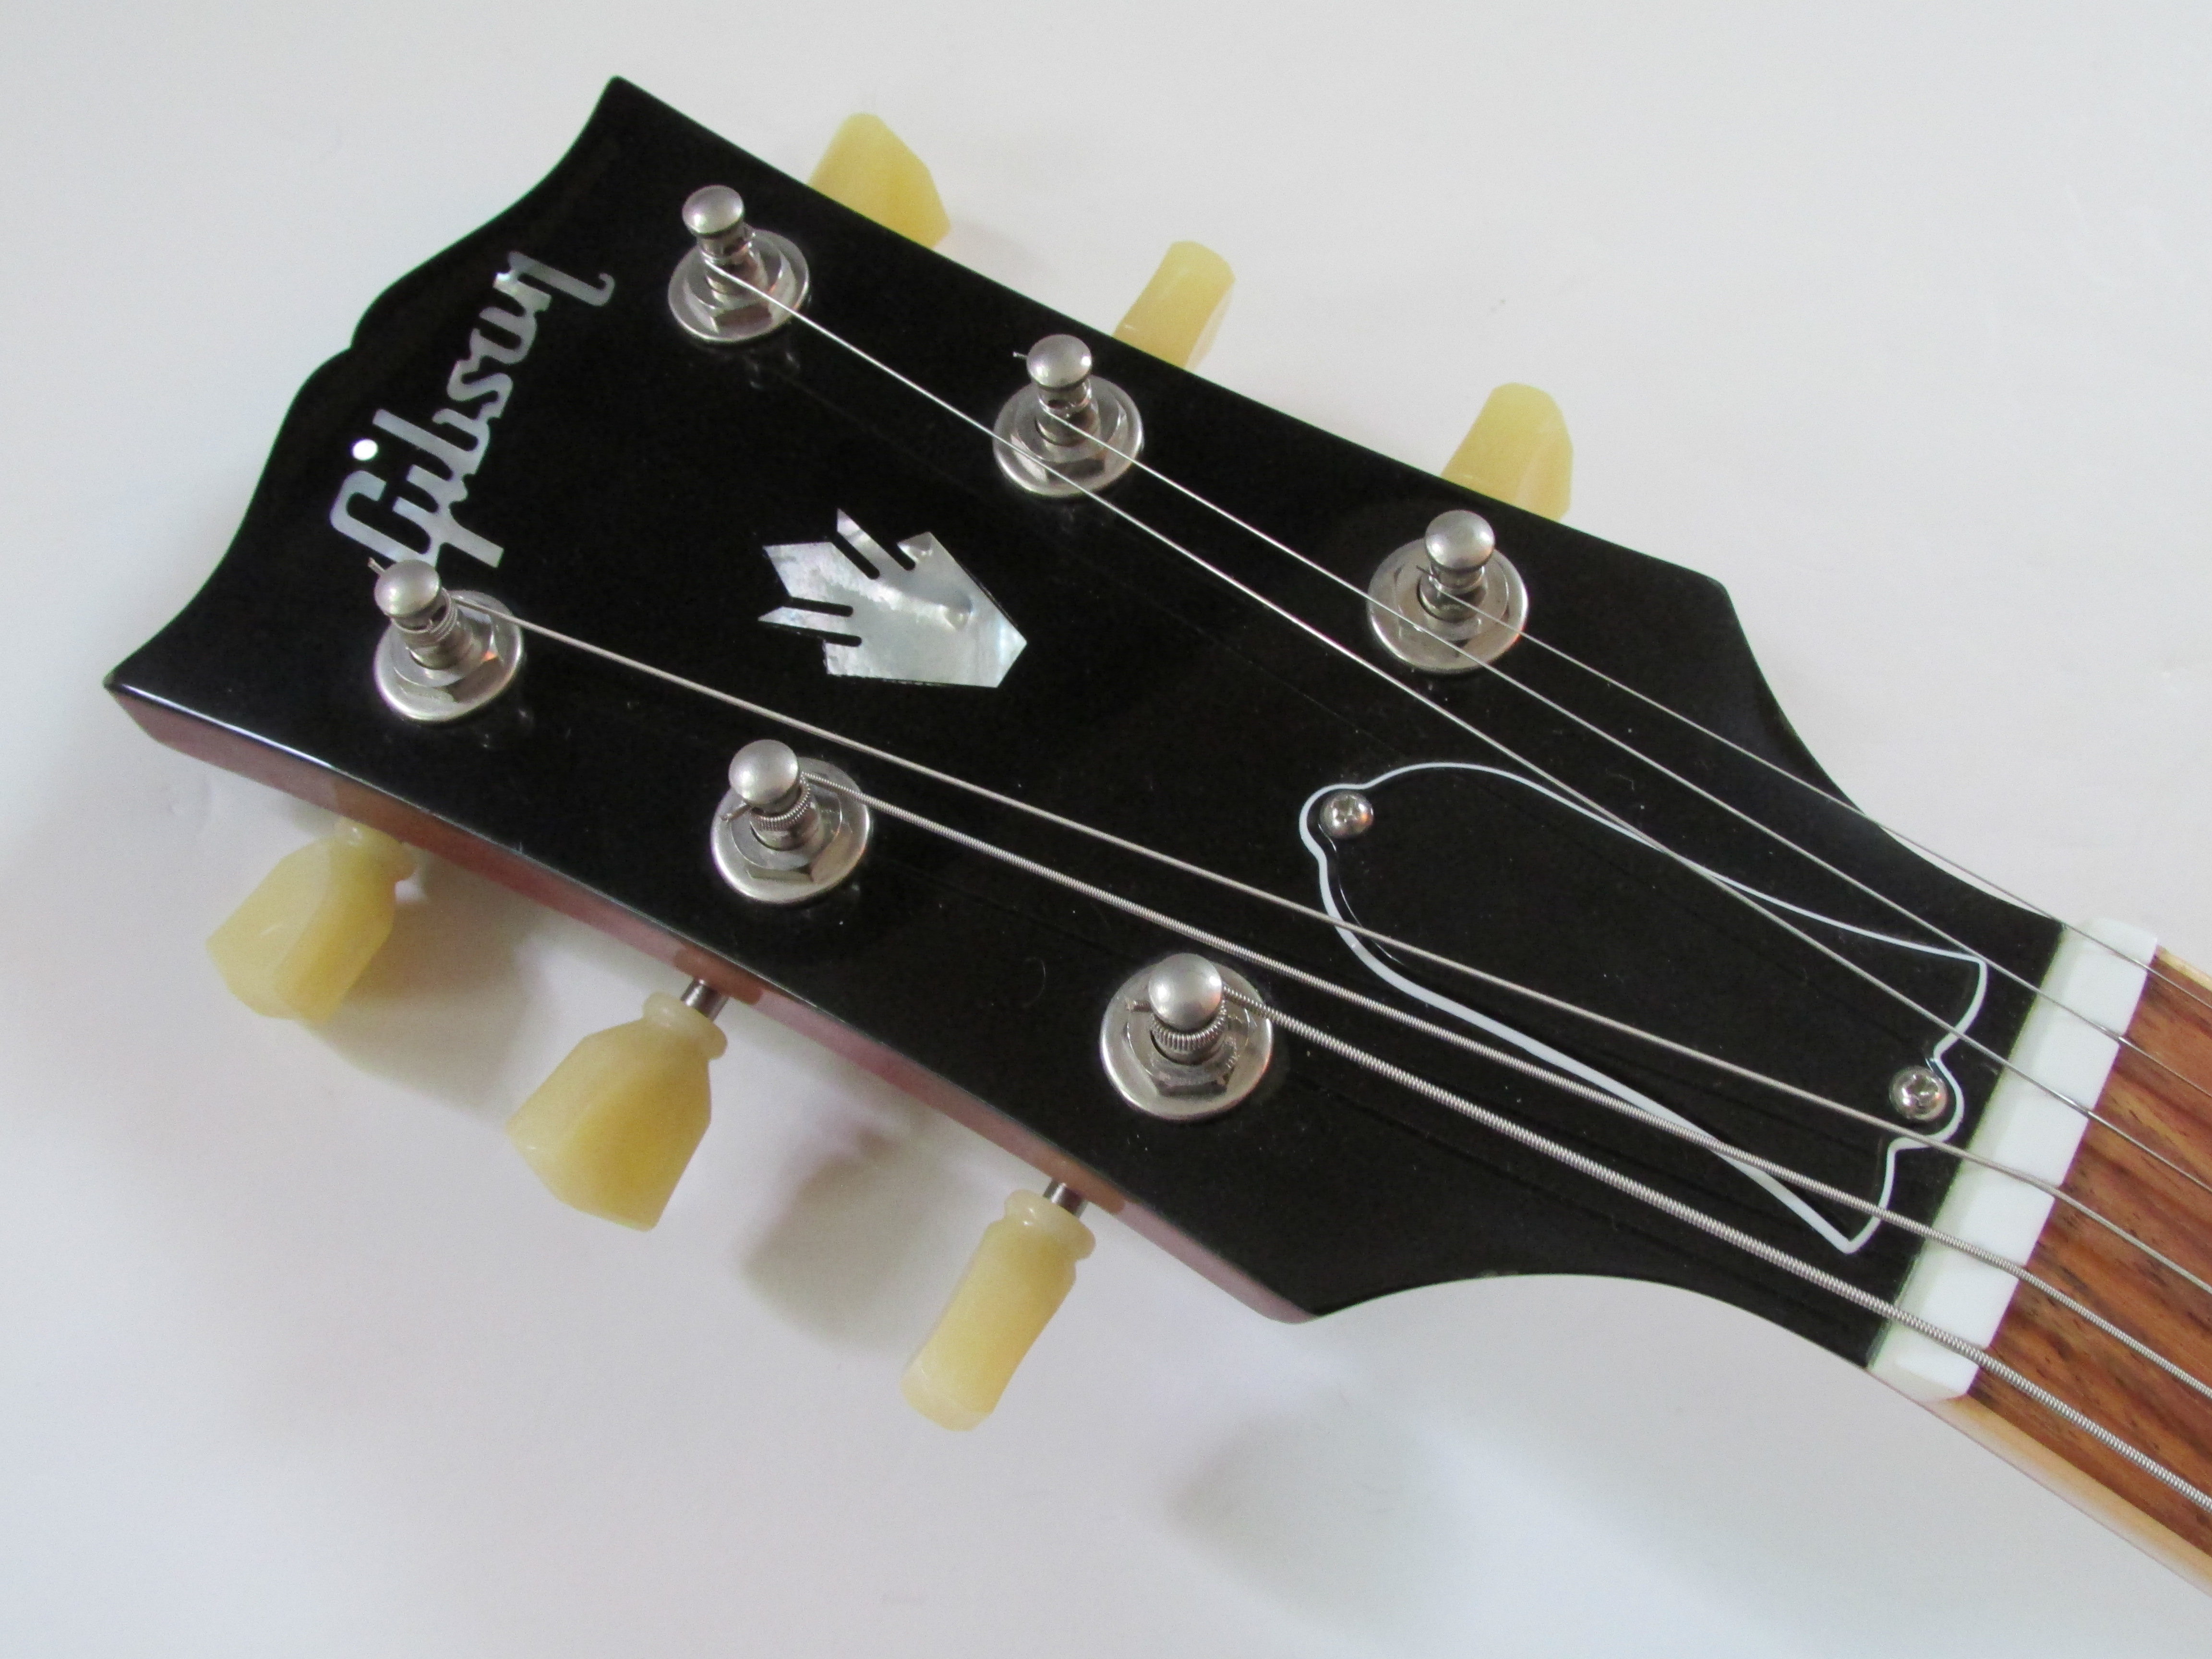 Gibson Sg 61 Reissue Wiring Diagram : Gibson sg reissue cherry gt guitars electric solid